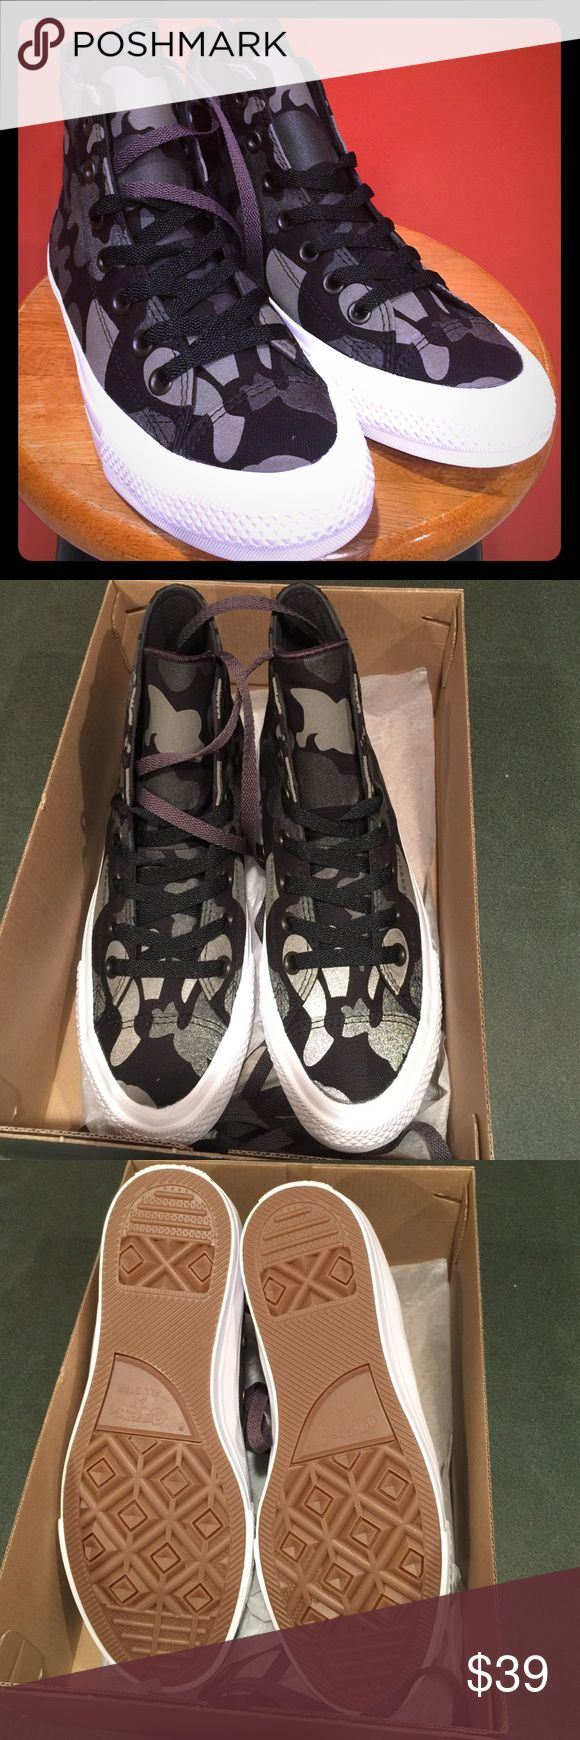 💕Quick Sale💕CONVERSE Unisex CT Reflective camo Last one each size.                                  Converse Unisex CT All Star II Reflective Camo Hi Top Sneaker Brand New in a box WM size 8. M 6/ WM 7. M 5 Model Number: 151157C Converse Shoes Sneakers